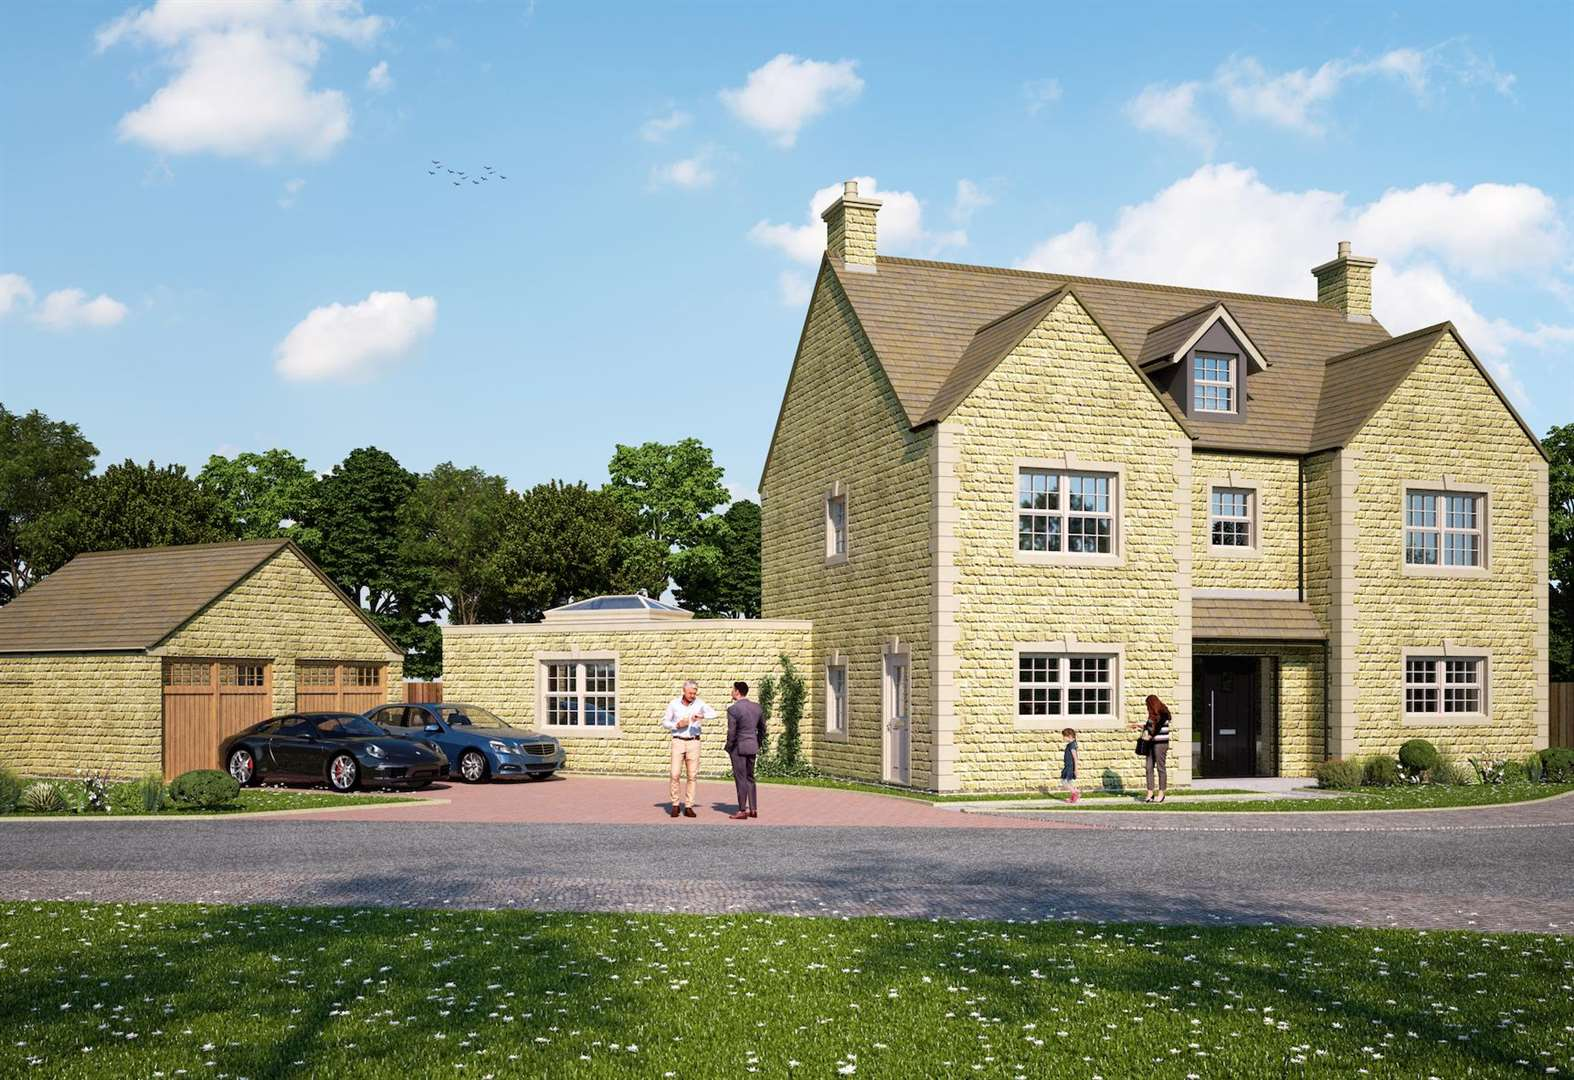 Work starts on £22m housing development in Stamford